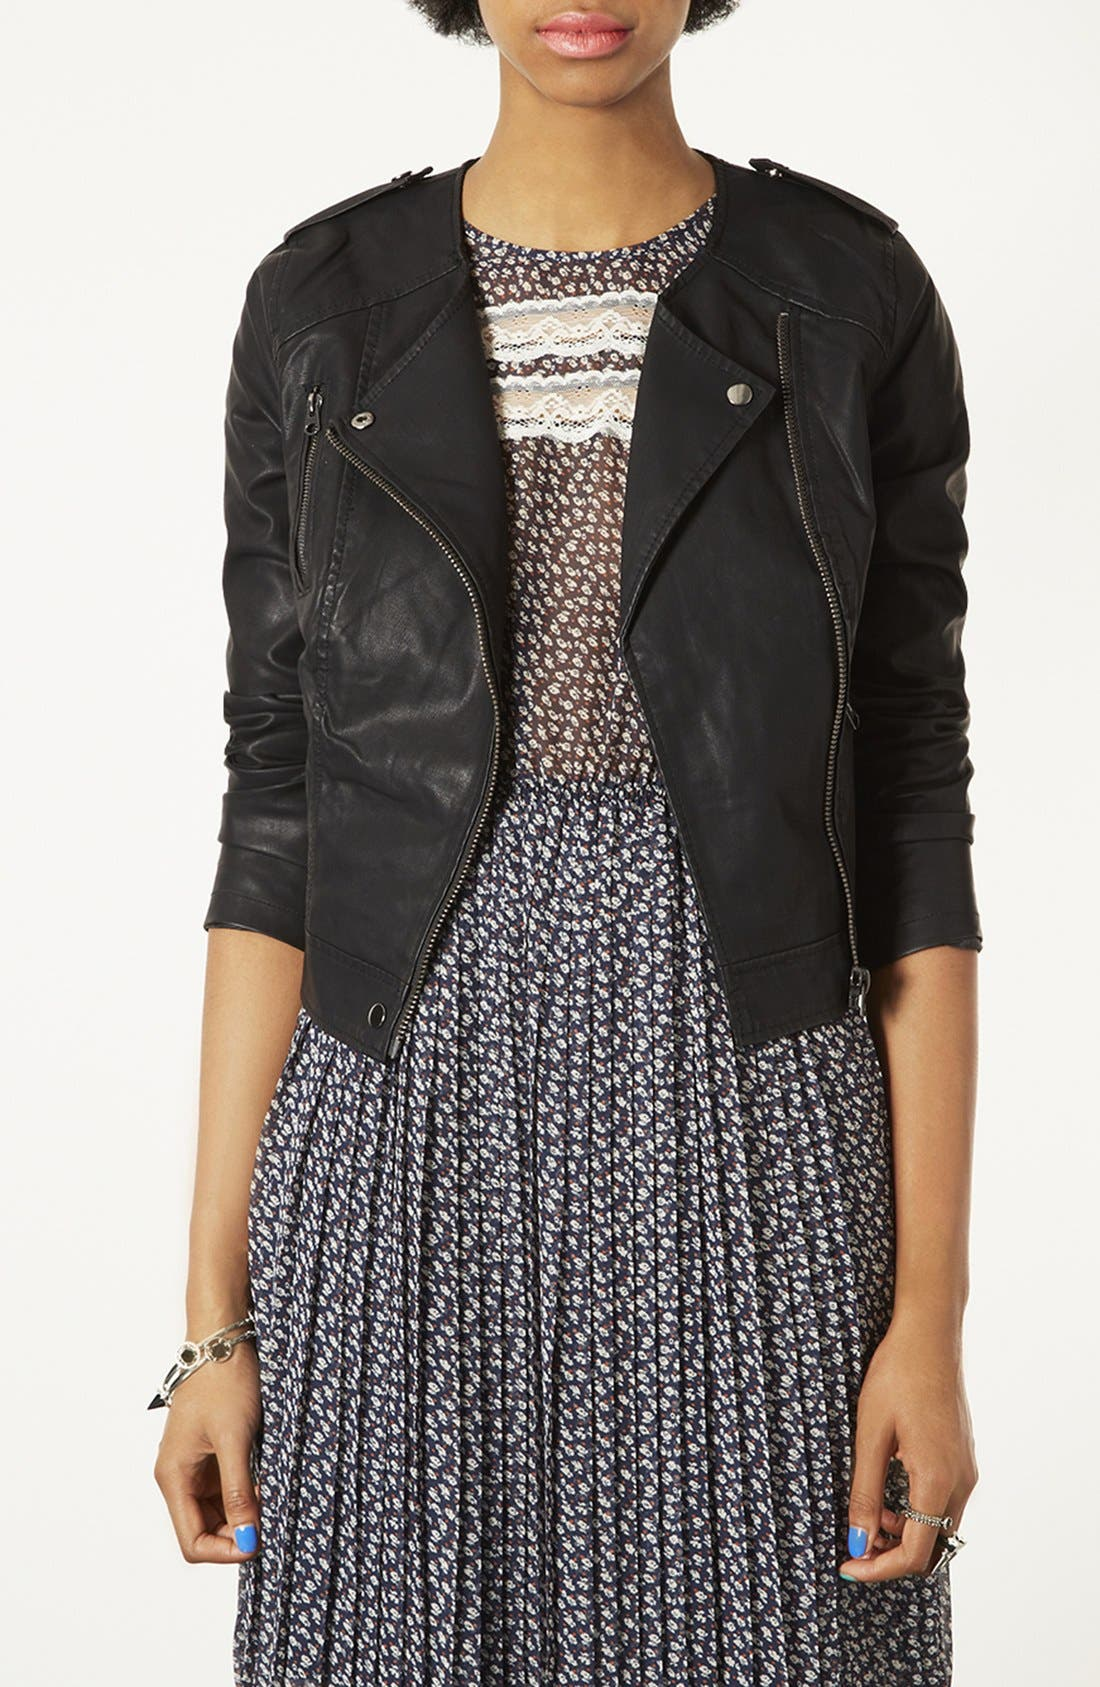 Alternate Image 1 Selected - Topshop 'Mirabelle' Faux Leather Biker Jacket